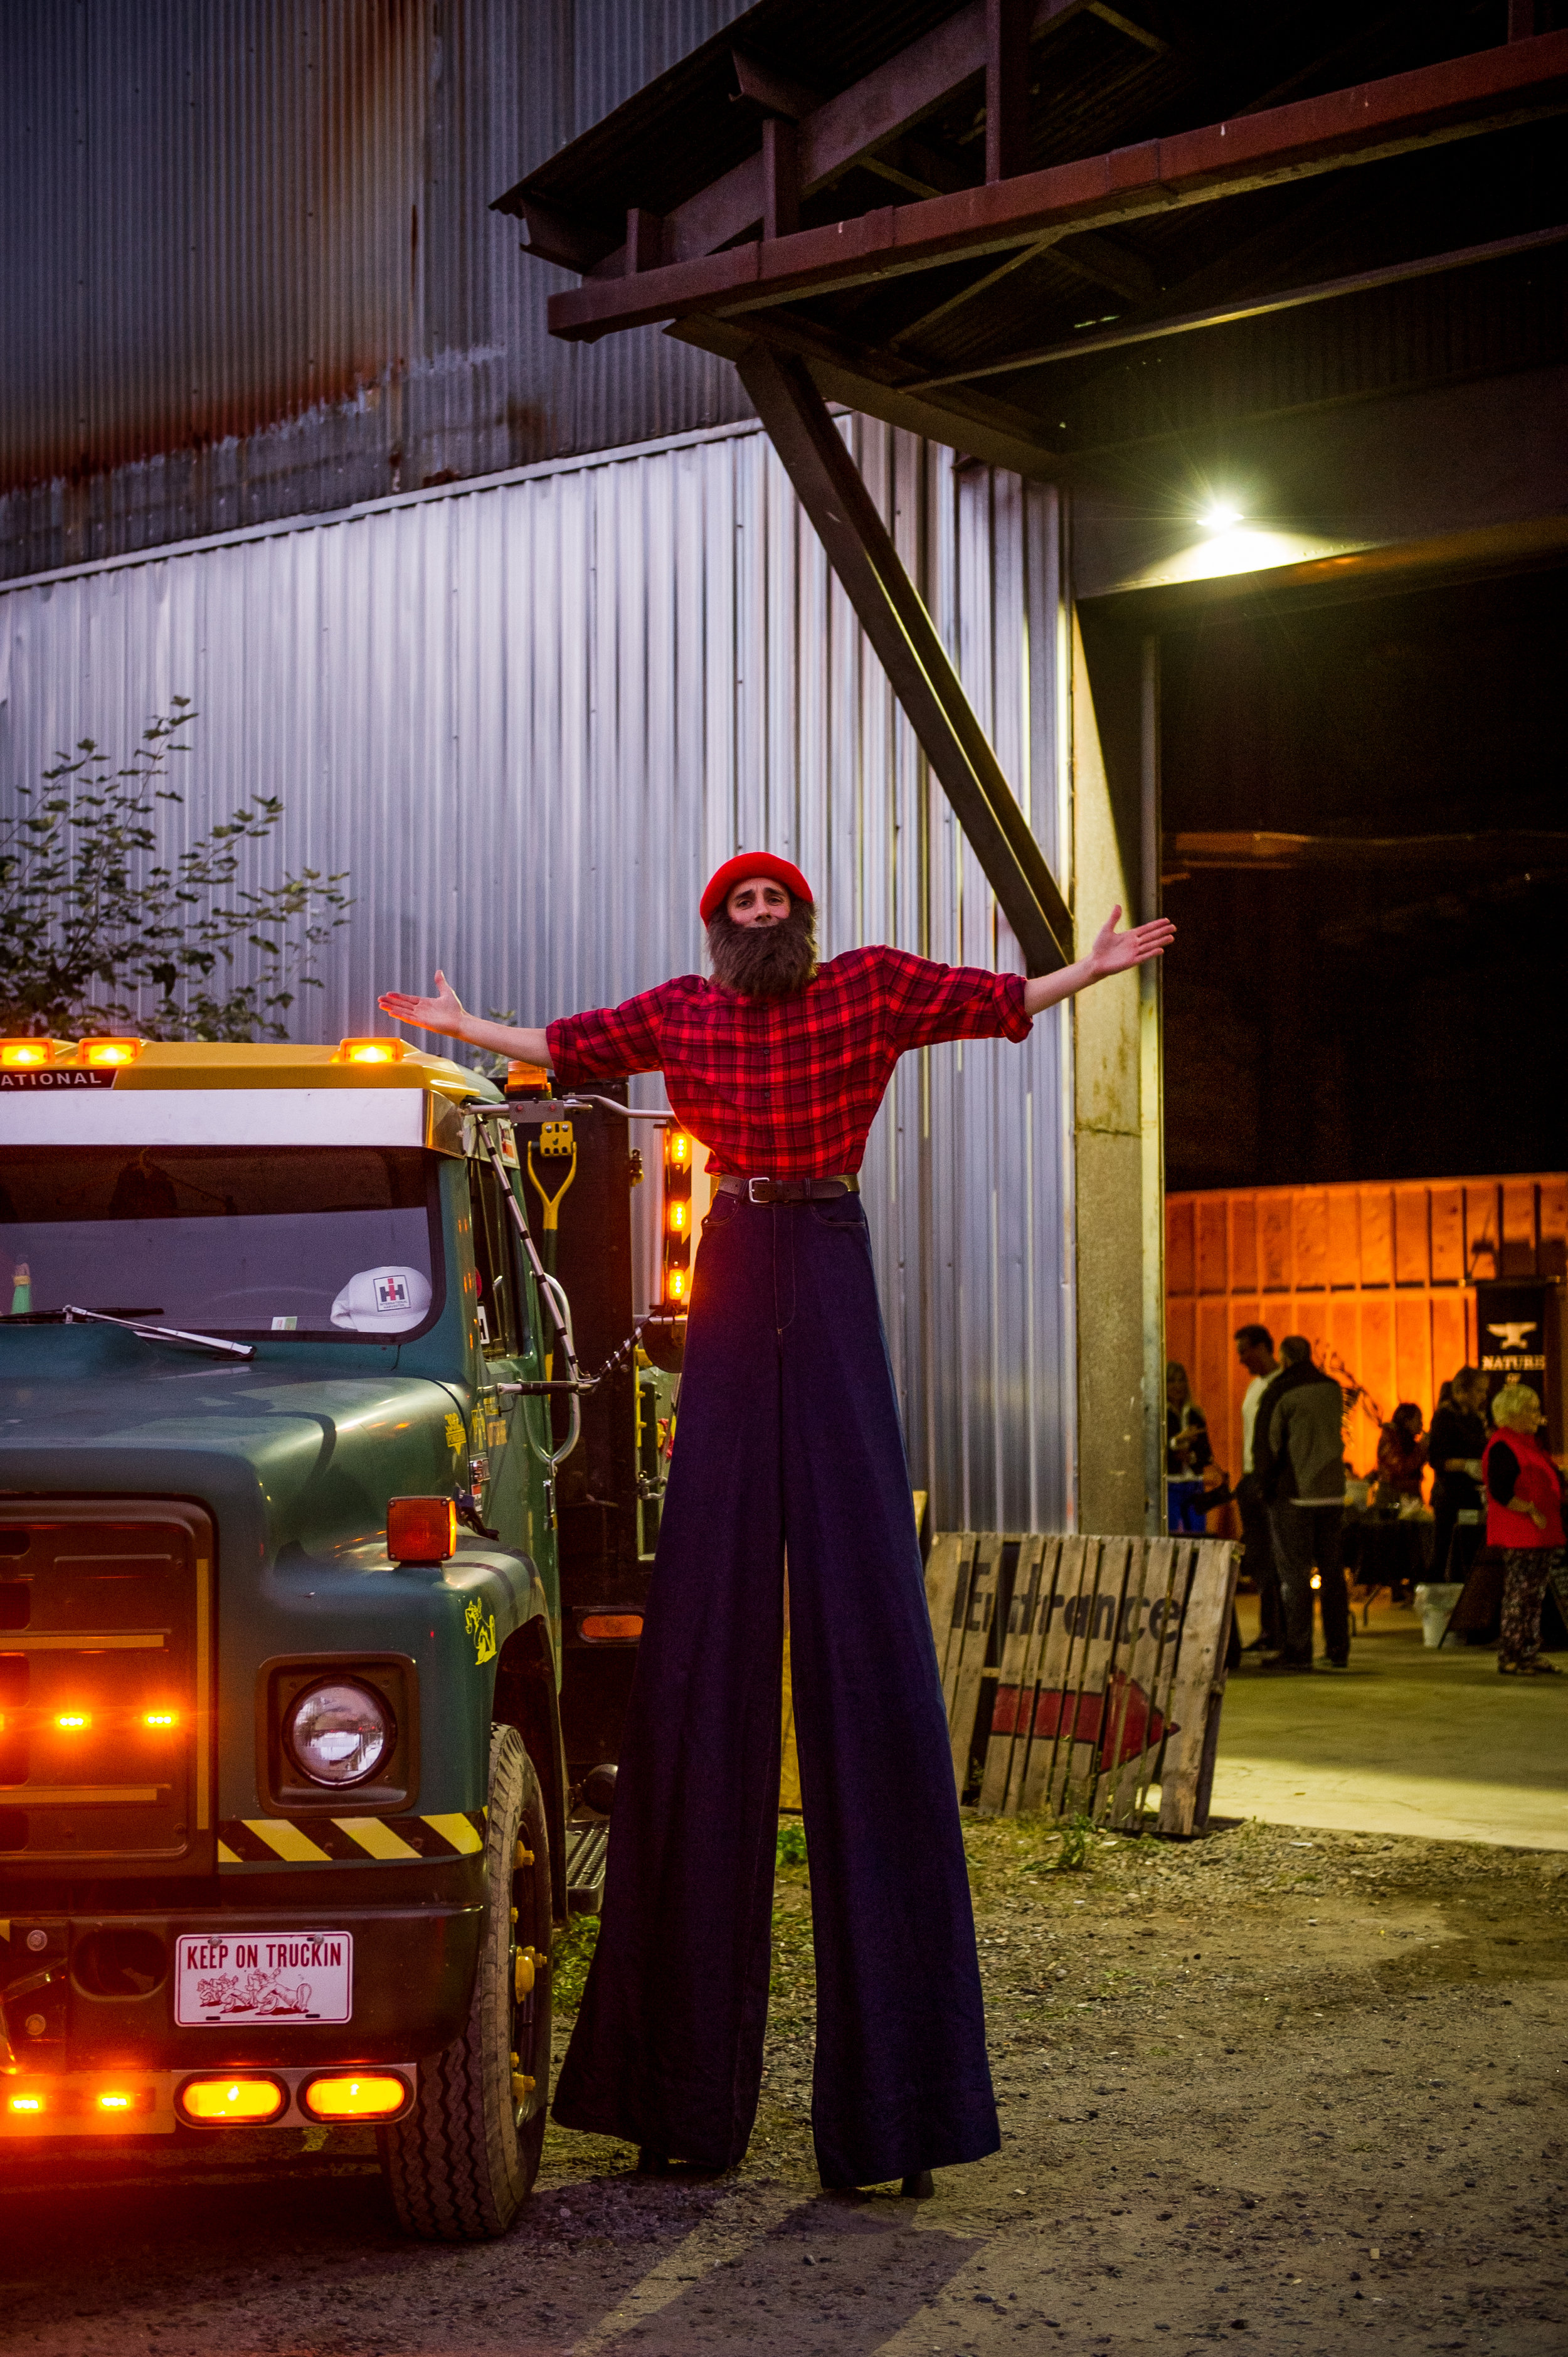 Nine-foot lumberjack on stilts with old truck and foundry